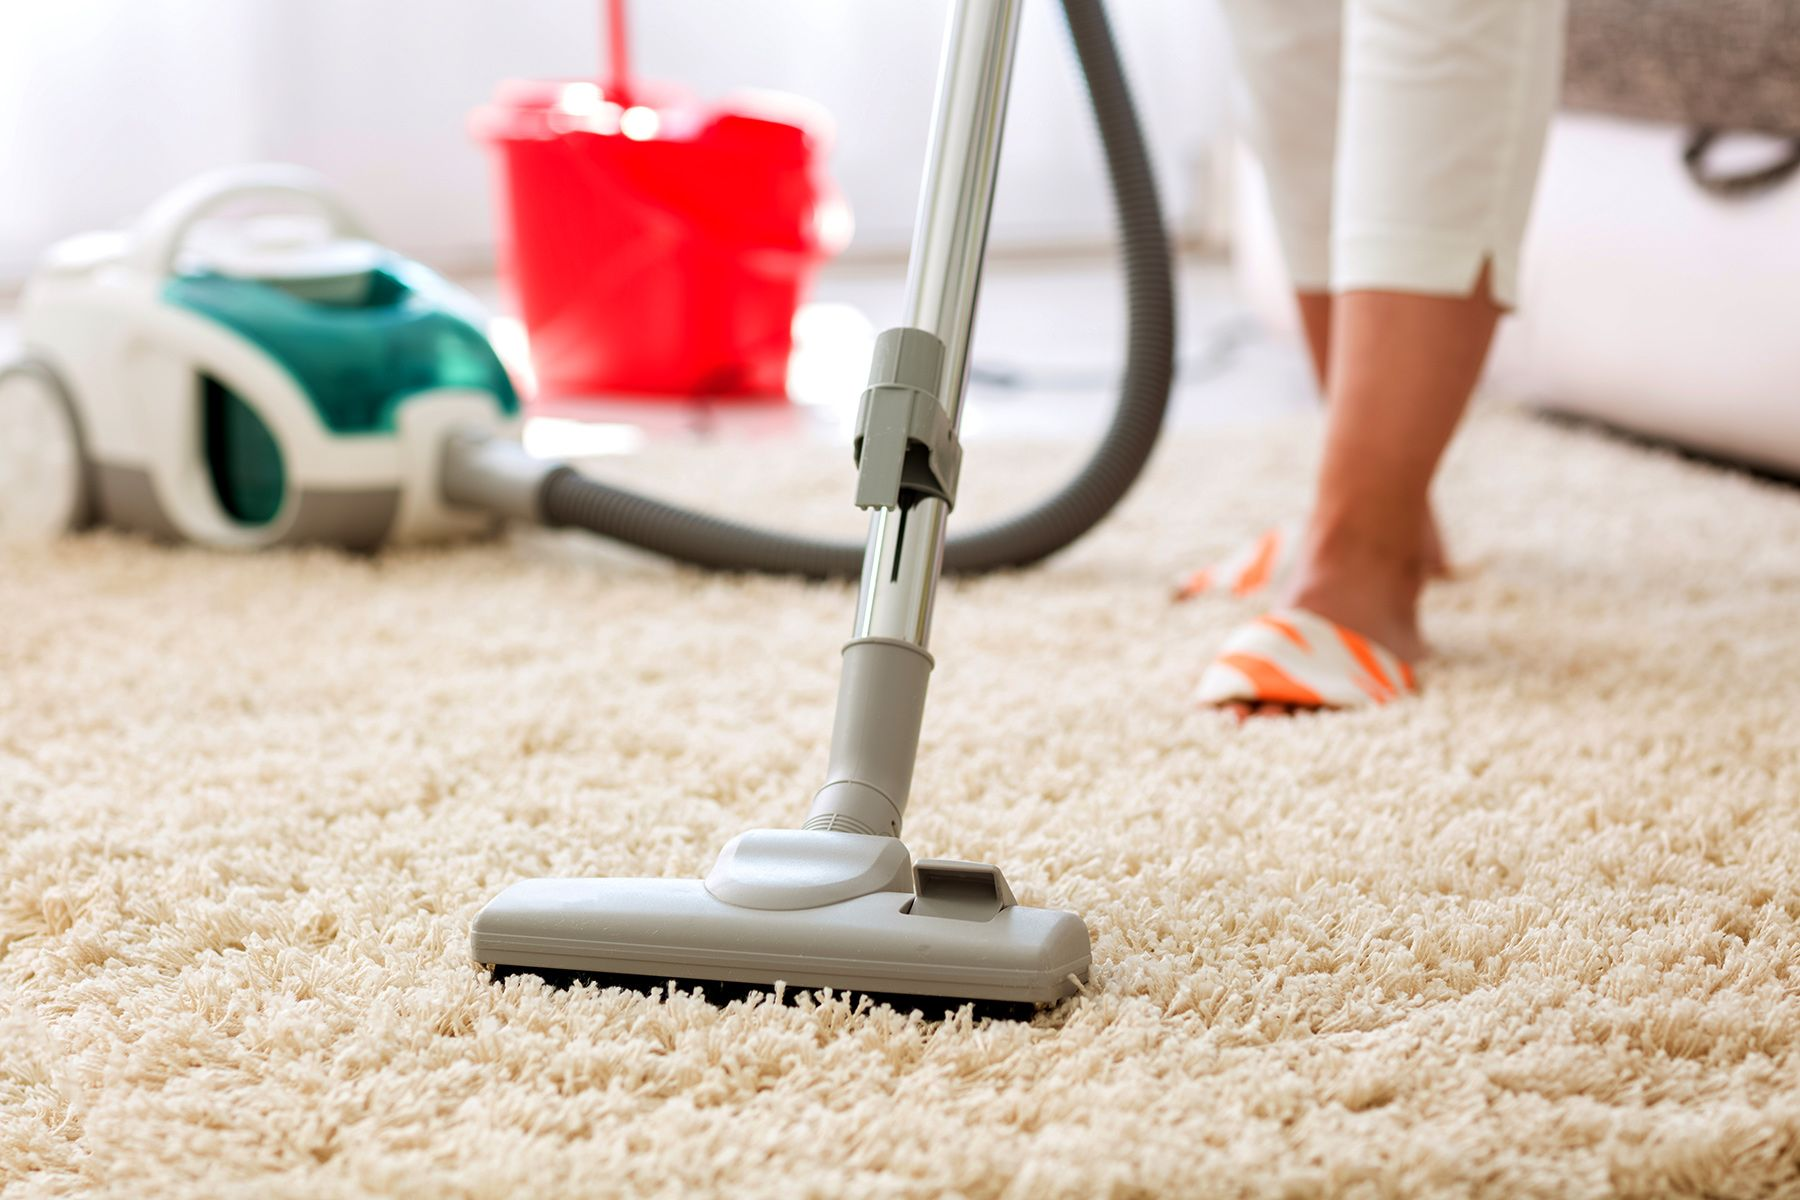 How To Get Rid Of Fleas On Hardwood Floors Naturally Two